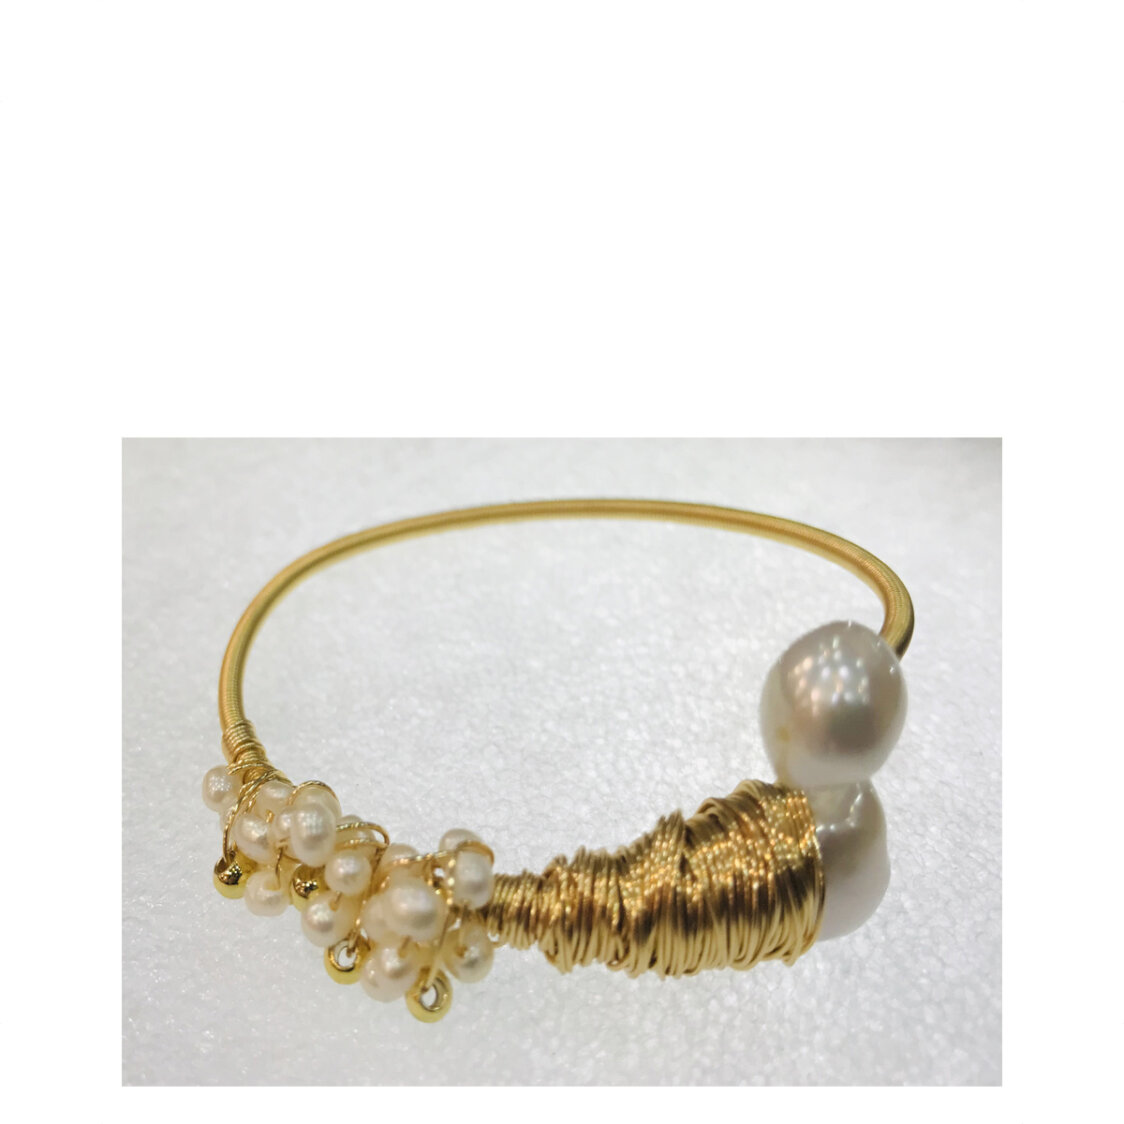 18K Gold Plated Wire With Baroque Pearls And Cluster Of Round Pearls Bangle